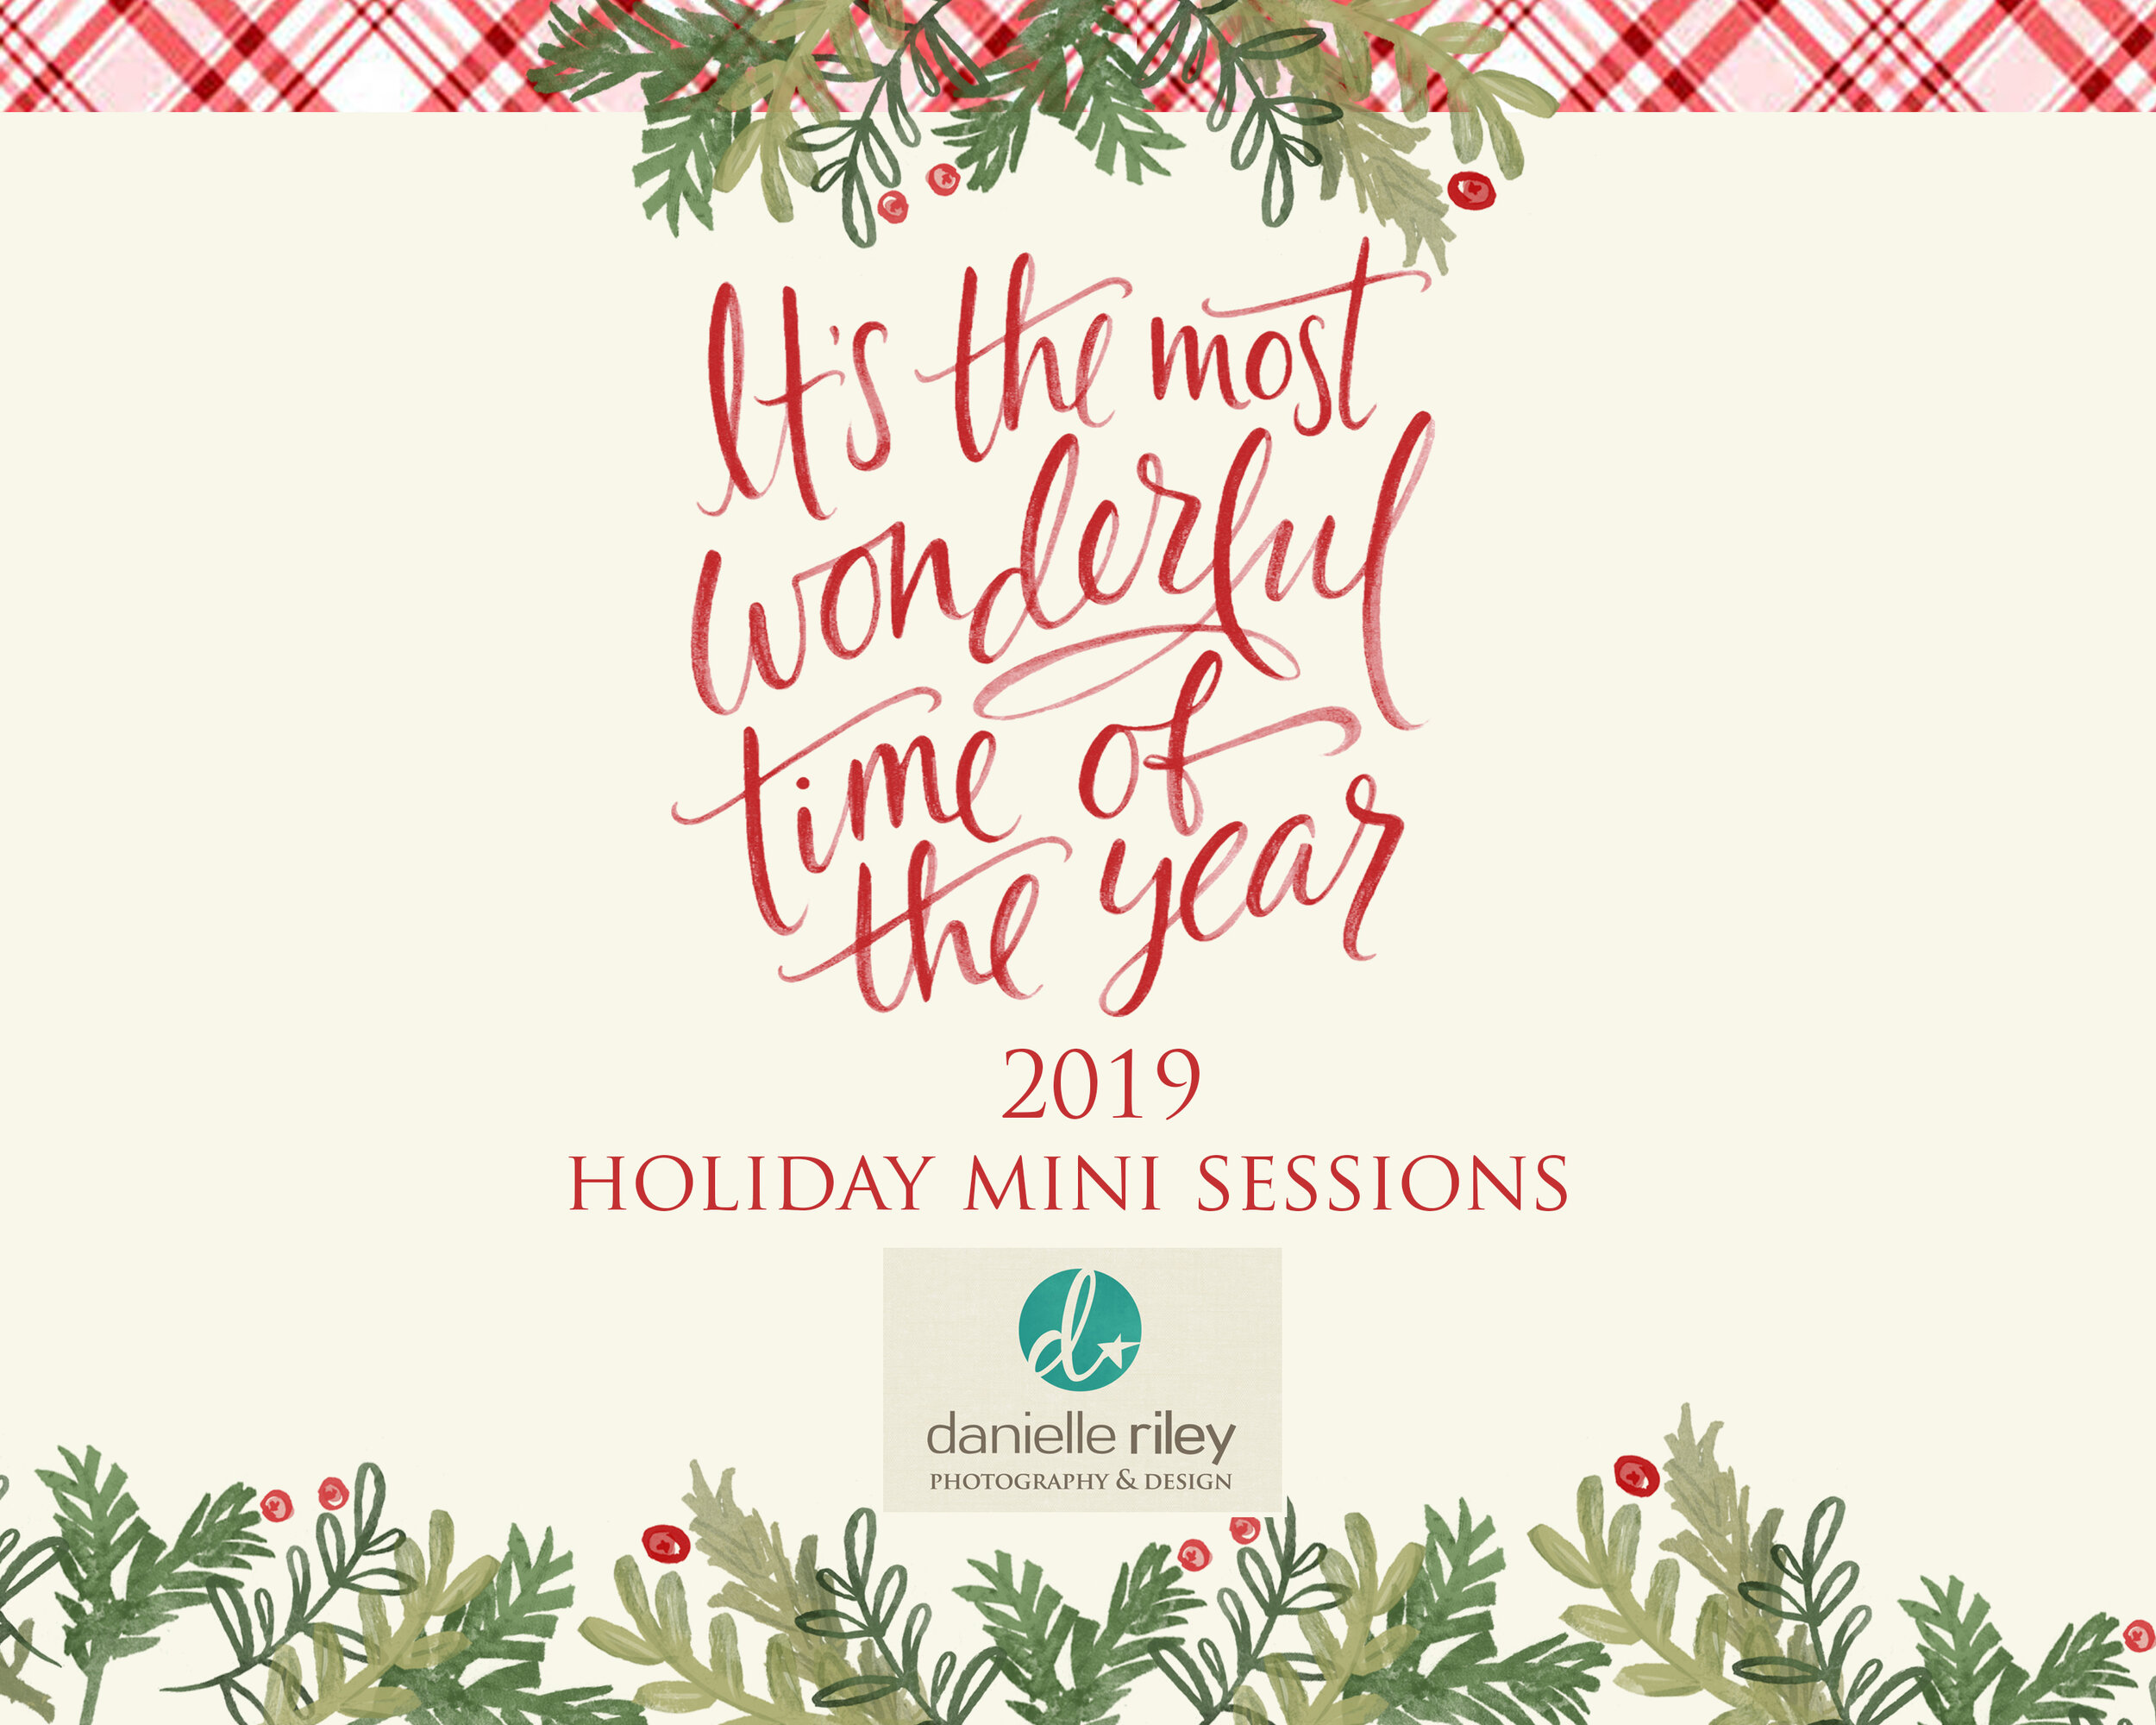 It's the most wonderful time of the year! Holiday mini sessions 2019 in Colts Neck, New Jersey